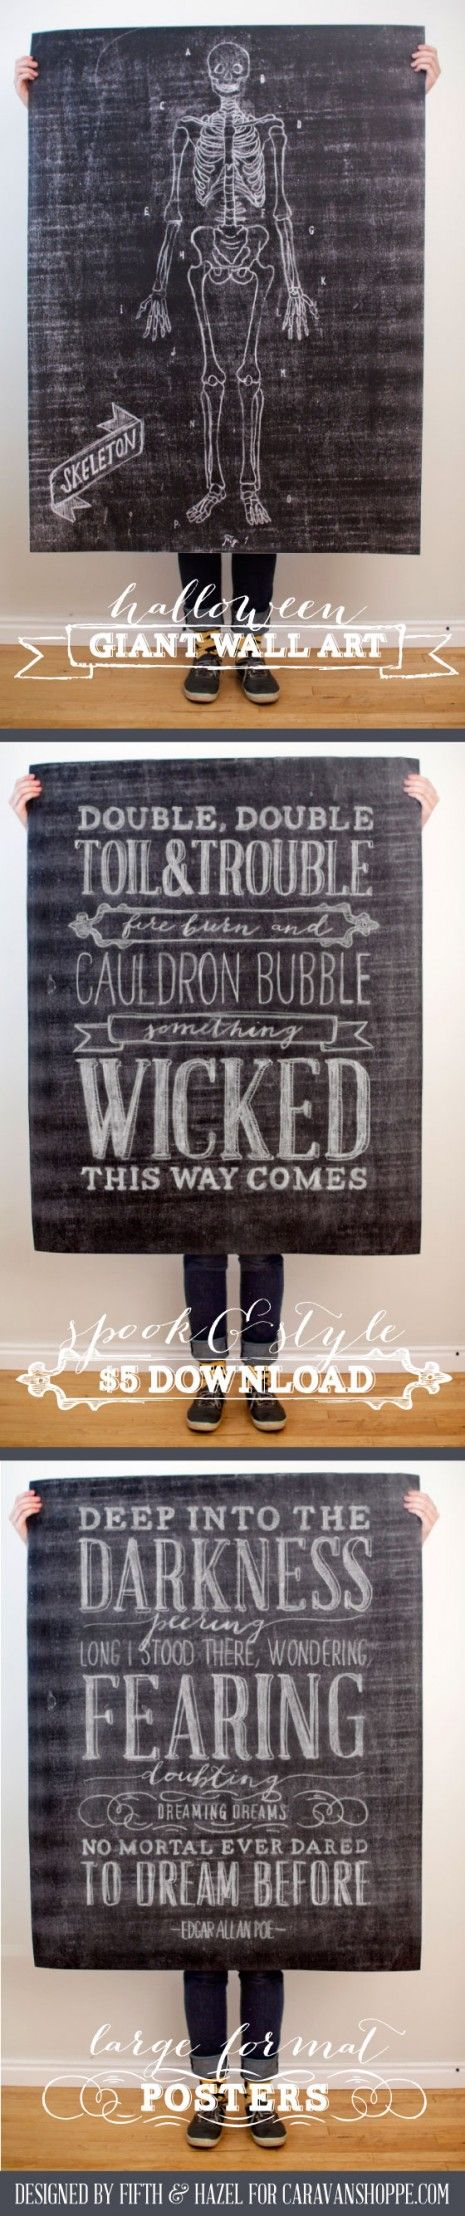 $5 Printable Halloween Wall Art for Caravanshoppe.com - such a great decorating option for such low money!